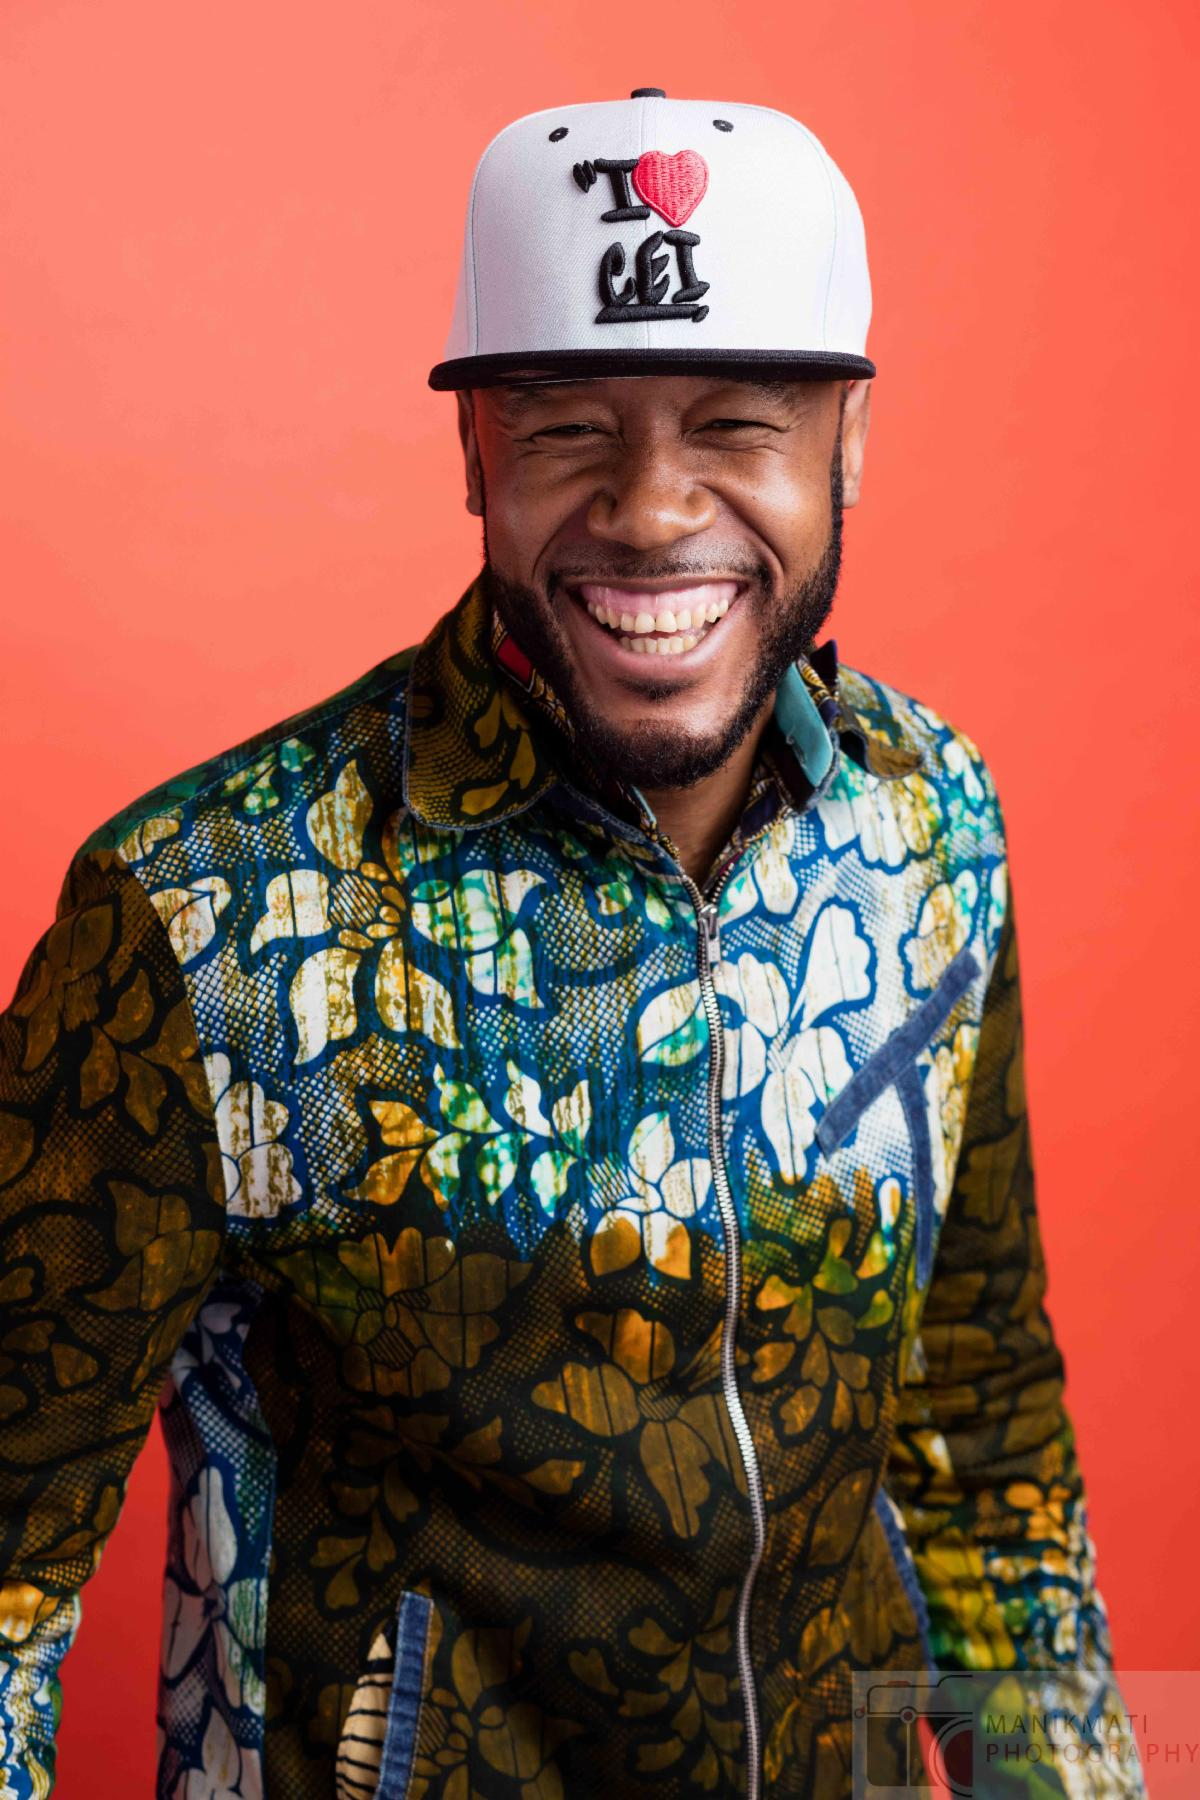 Vox Sambou is shot from the waist up against a salmon background. He is wearing a dark gold floral shirt and a baseball cap. Vox is a black man with a trimmed beard. He smiles at the camera.